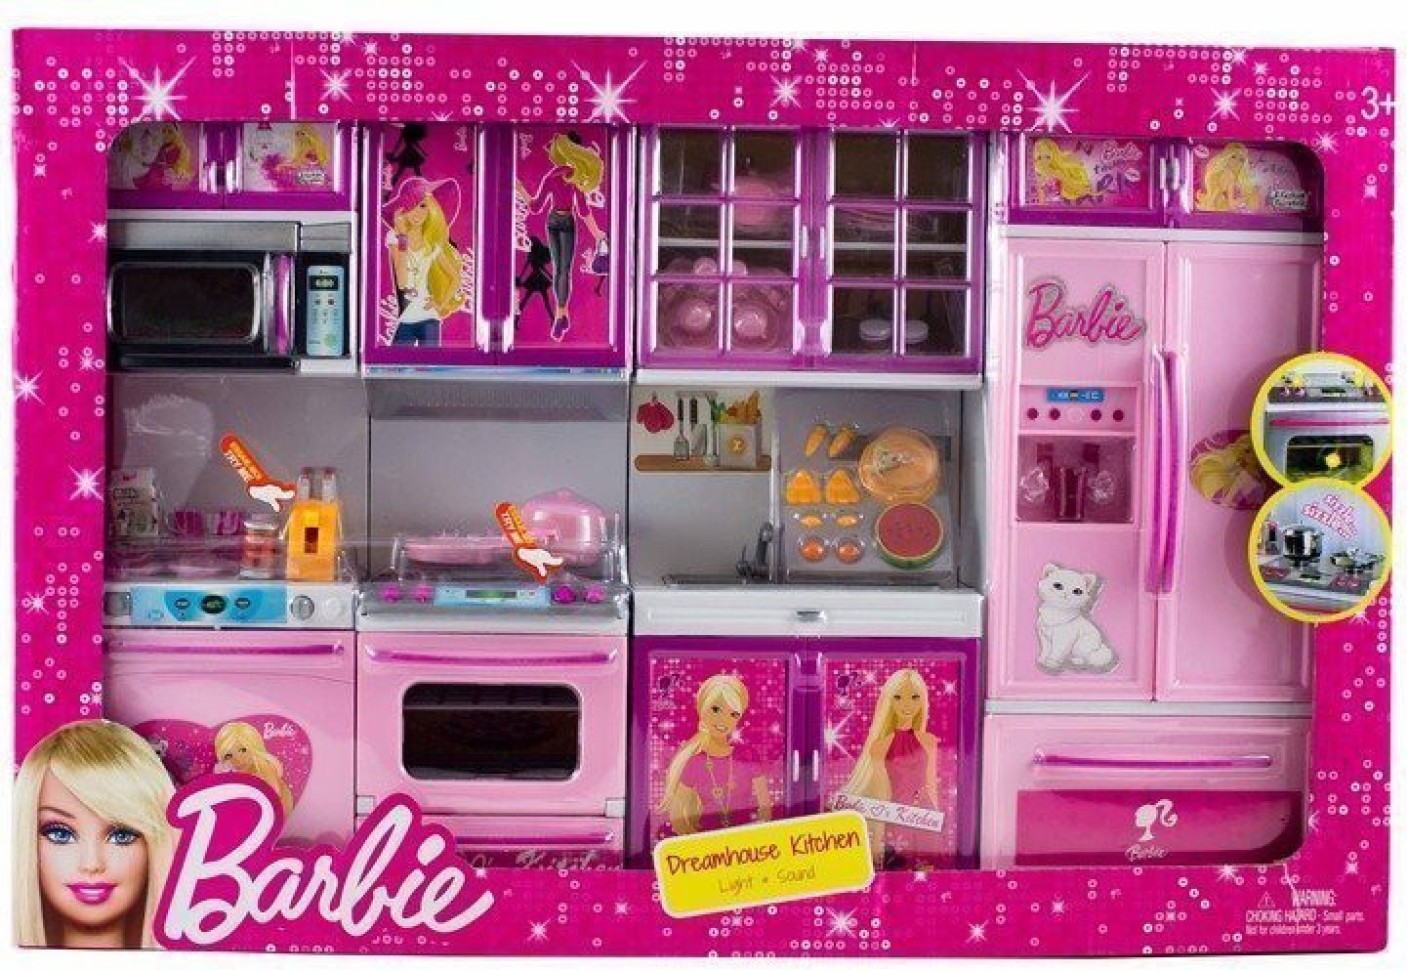 We blink barbie kitchen set barbie kitchen set buy for Kitchen set from the 90 s